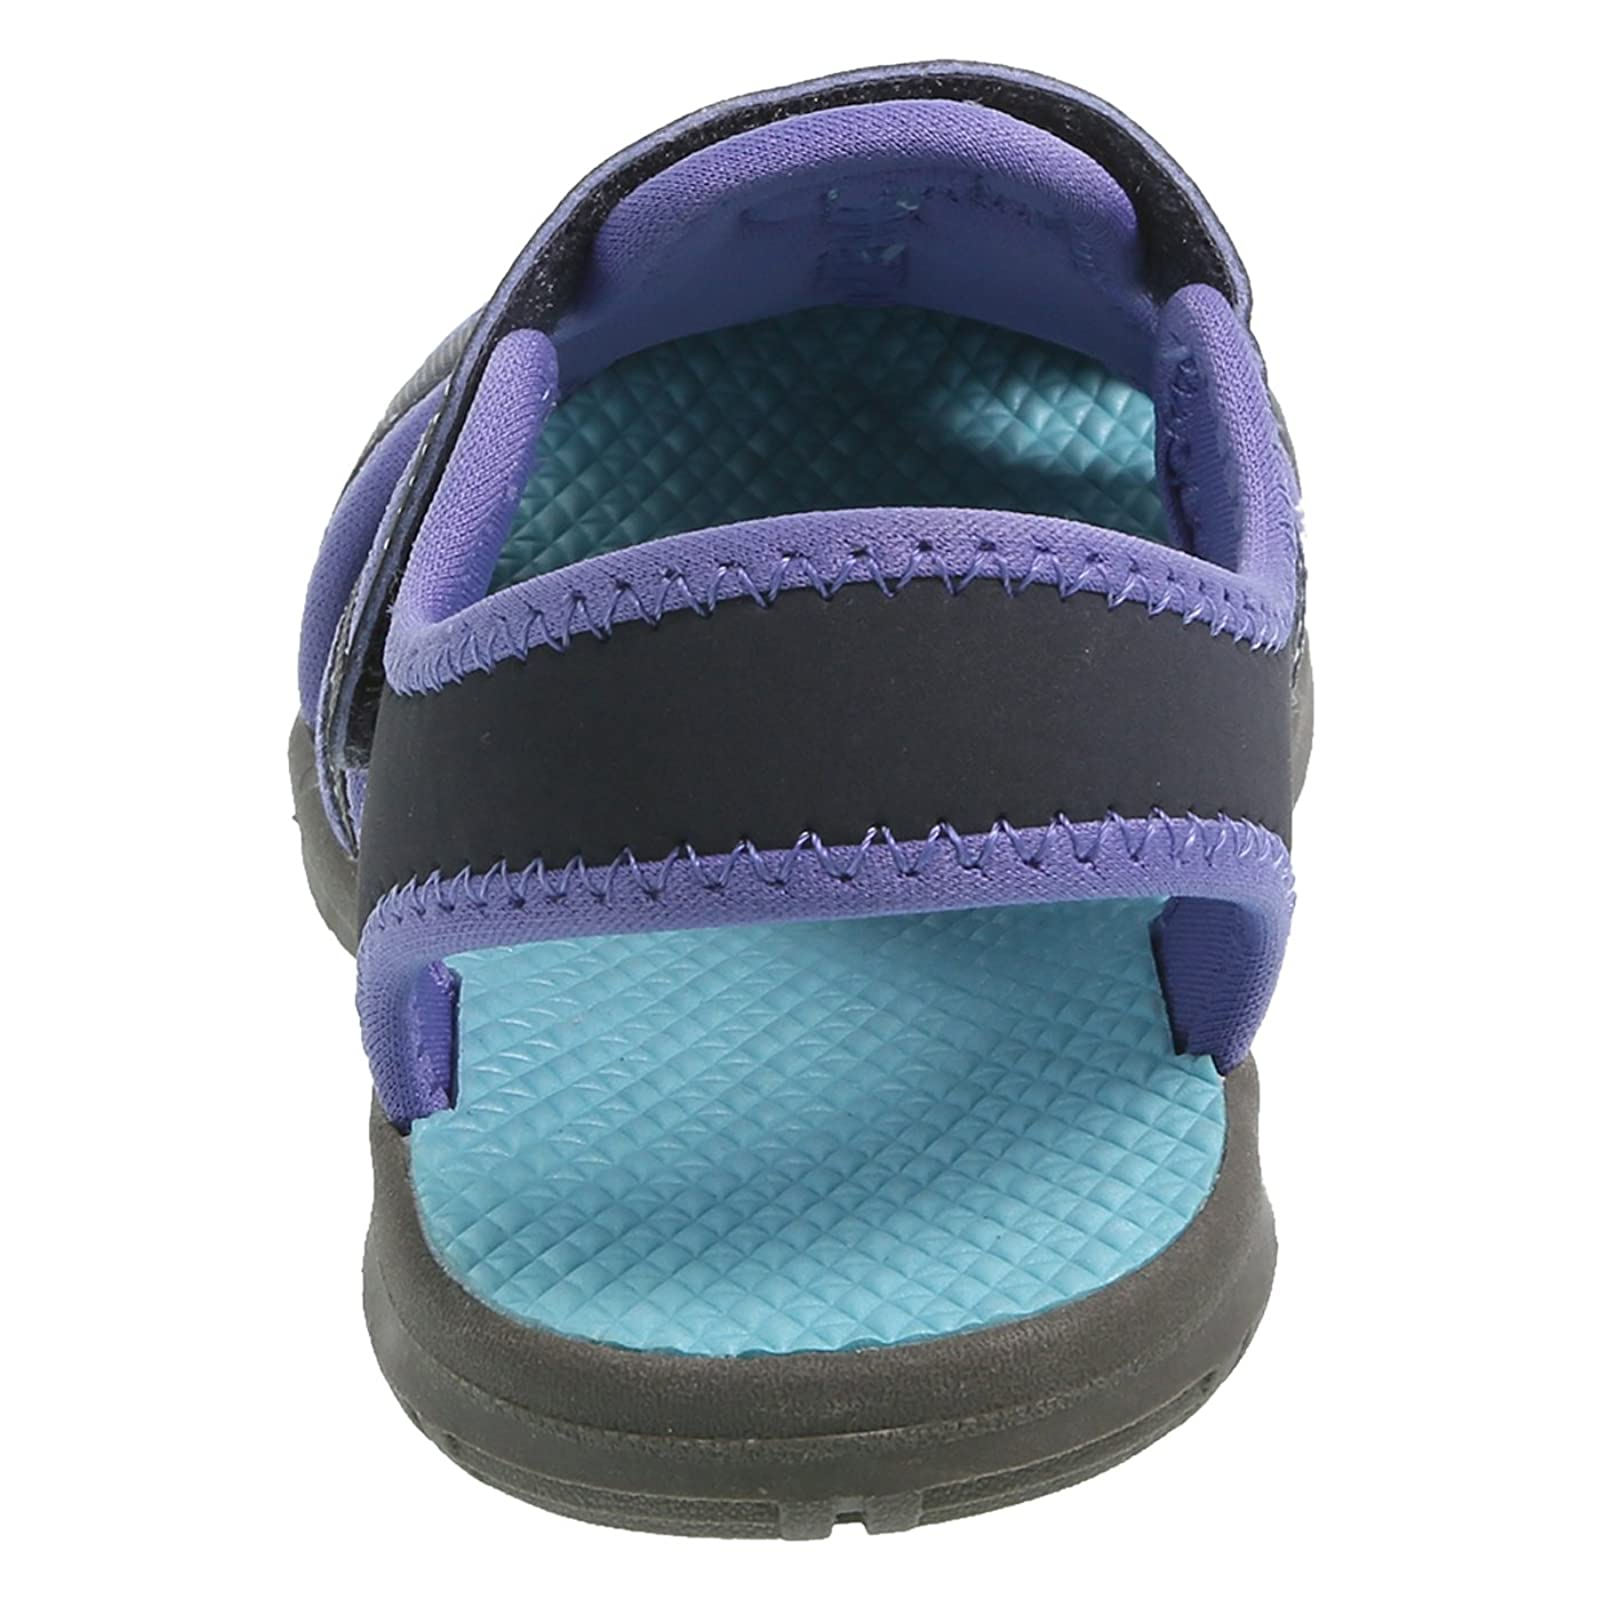 Rugged Outback Girls' Marina Bumptoe Sandal 7 M US - 2